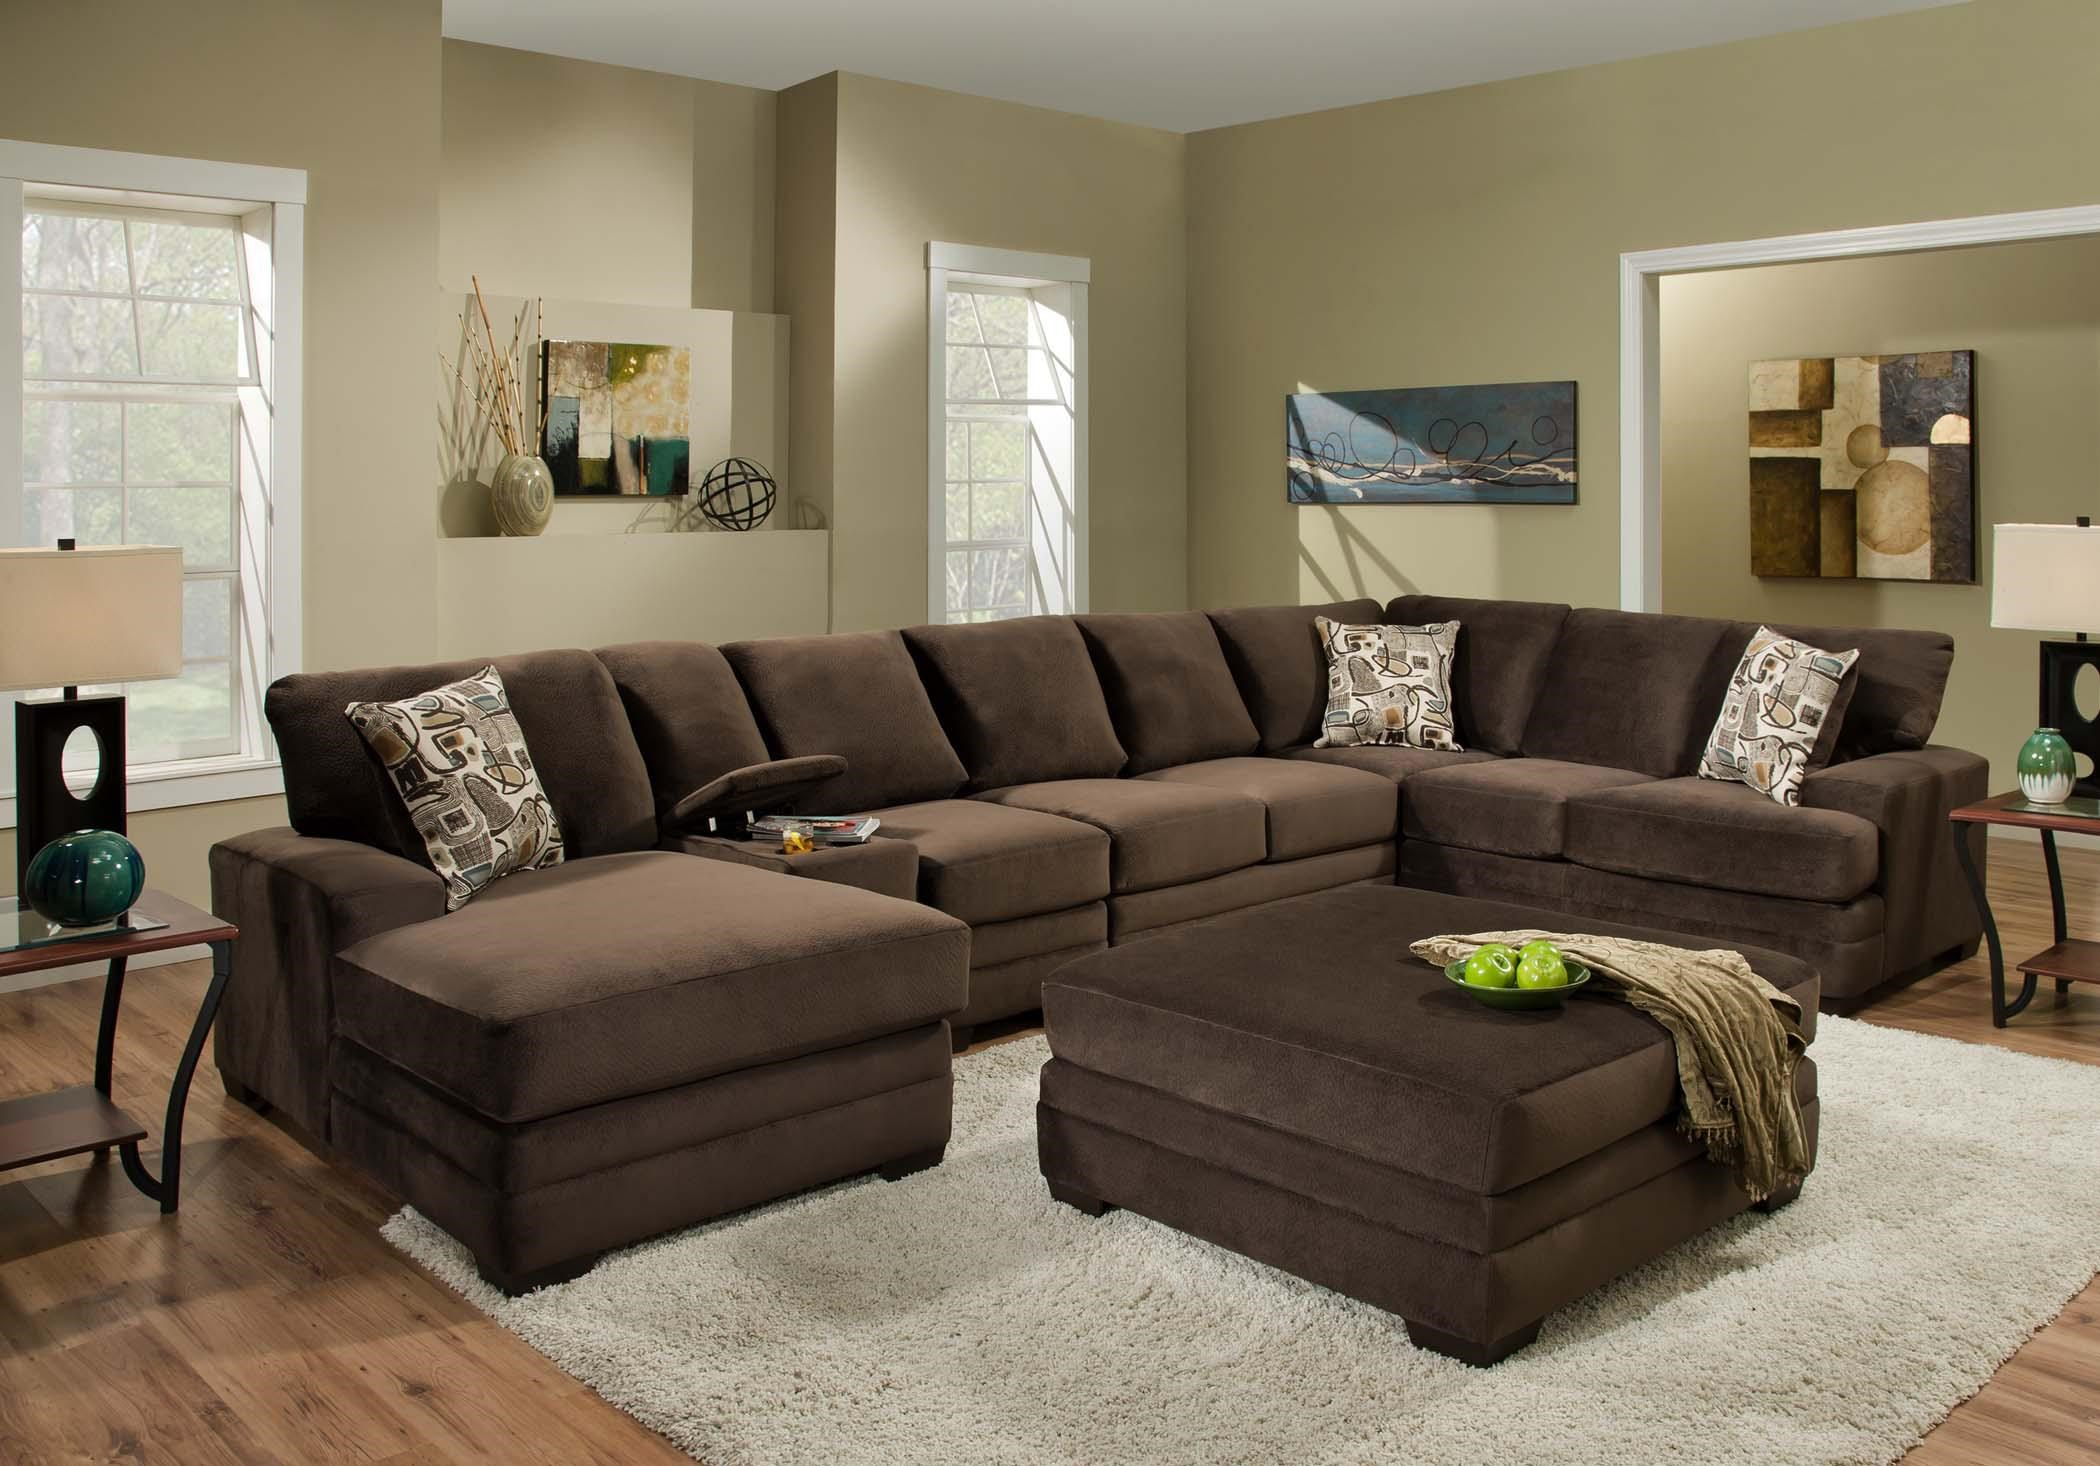 american furniture living room sectionals hotels with rooms 3500 sectional sofa chaise miskelly stationary group